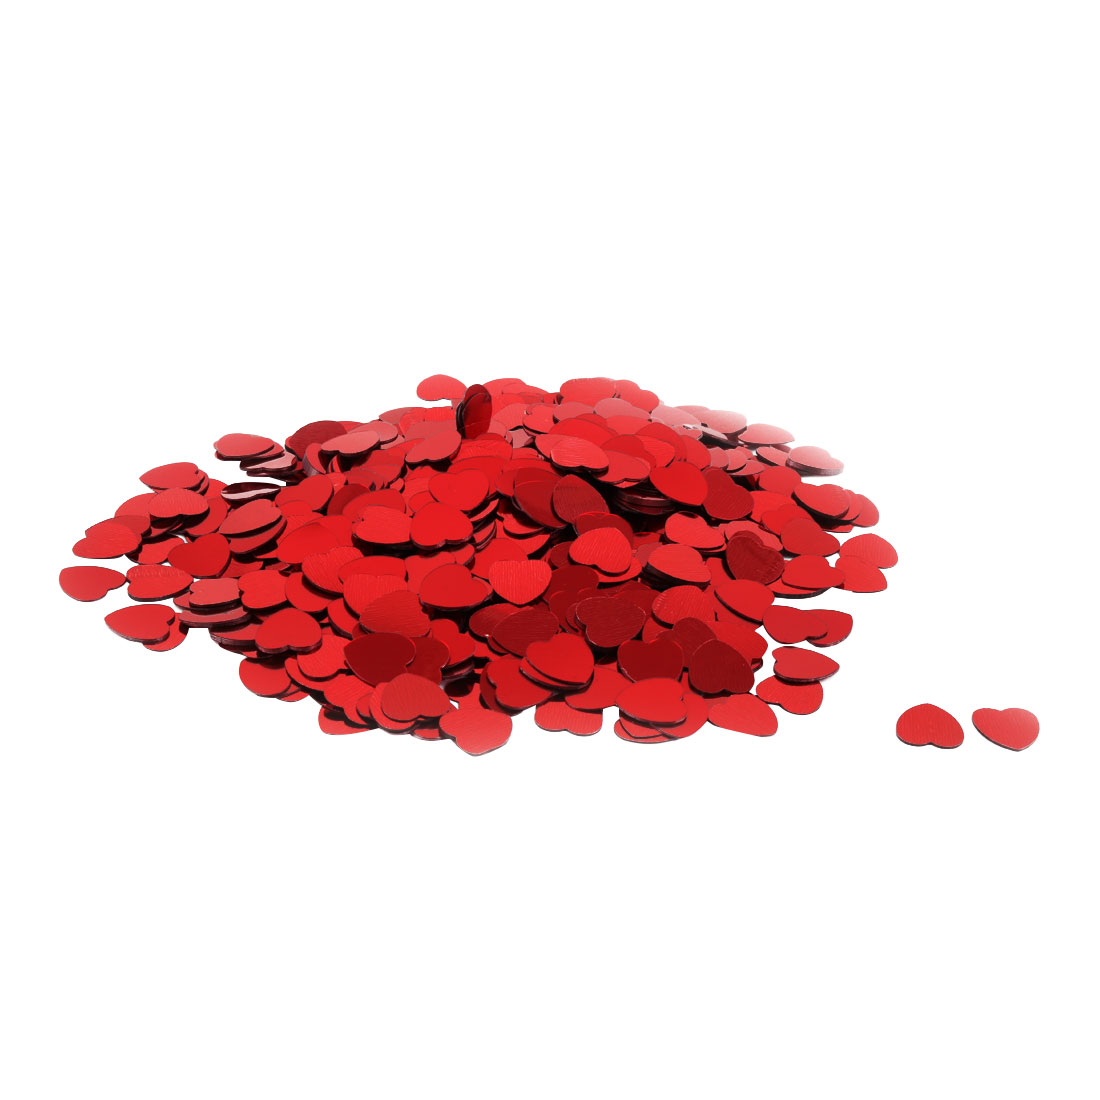 Wedding Party Plastic Heart Shaped Romance DIY Sprinkles Table Decor Red 500 Pcs